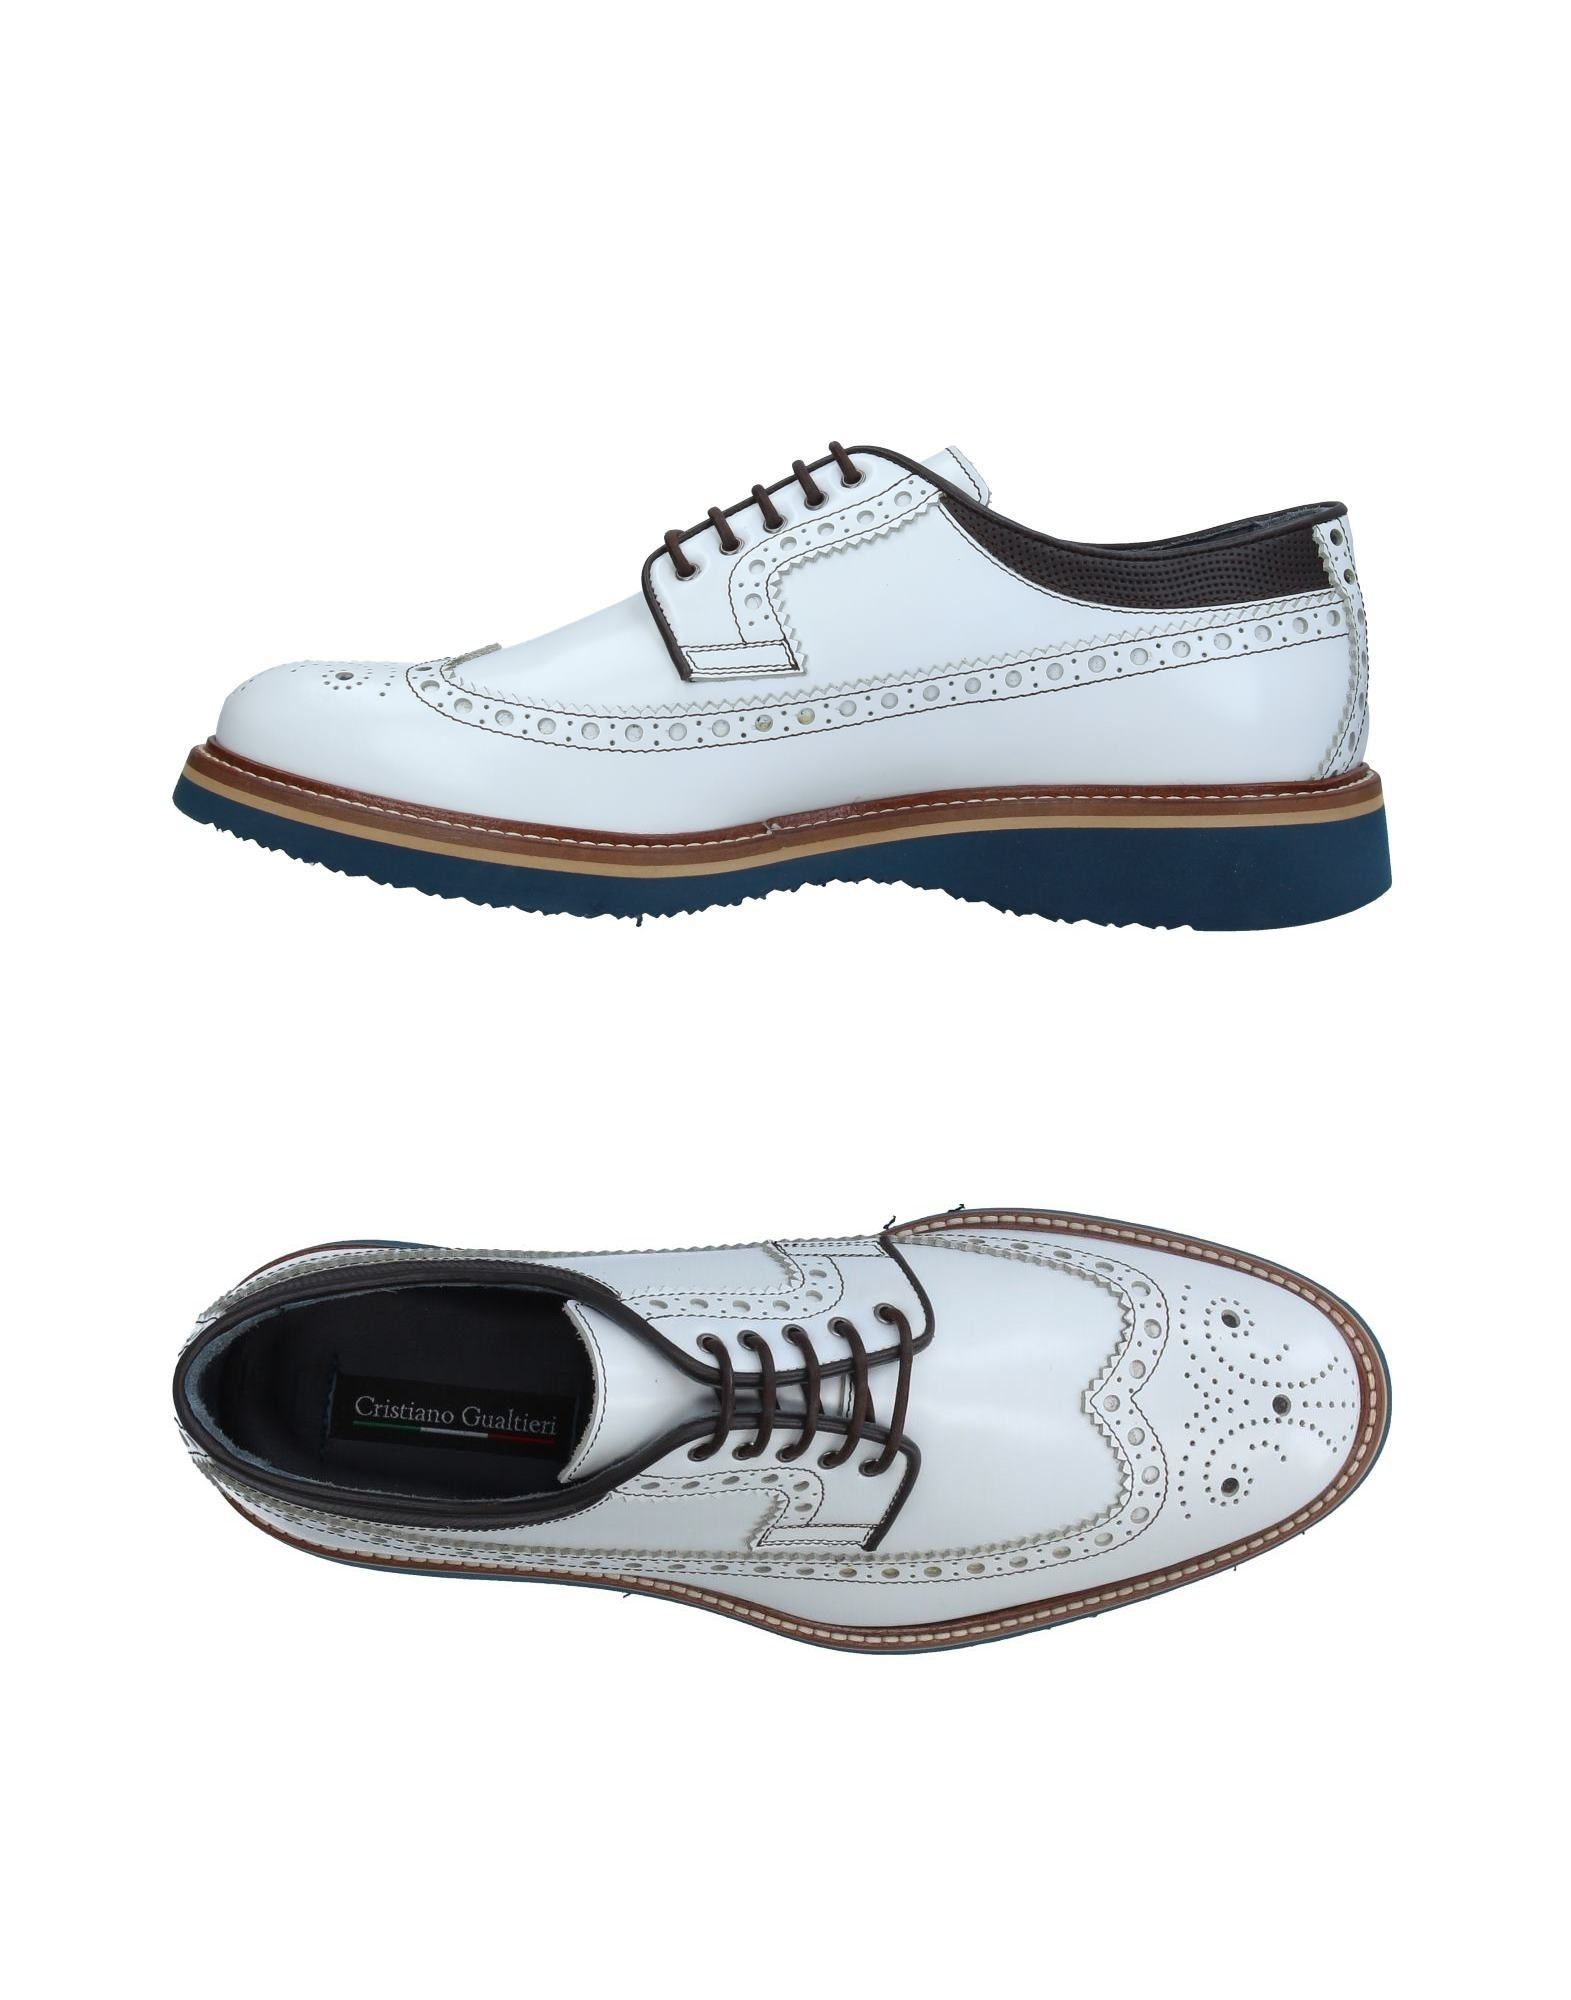 Chaussures À Lacets Cristiano Gualtieri Homme - Chaussures À Lacets Cristiano Gualtieri sur